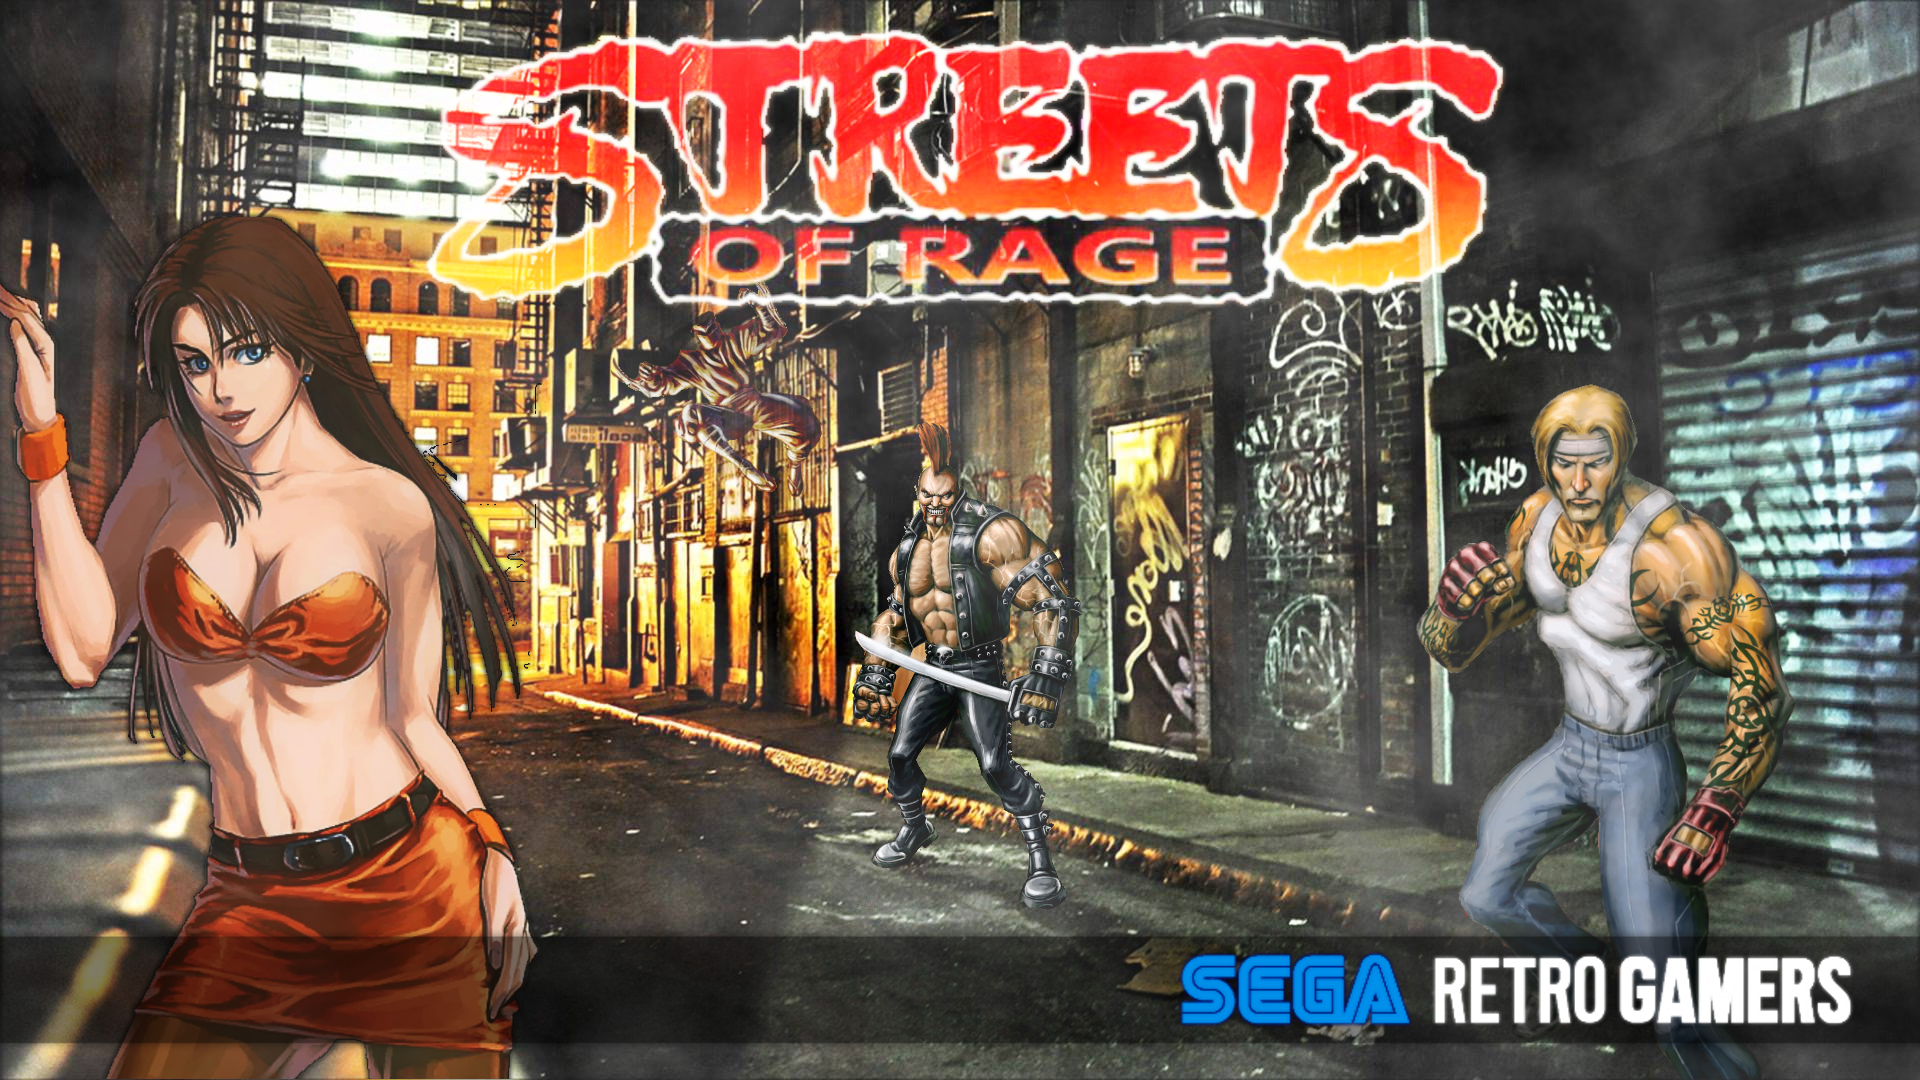 Streets Of Rage Wallpaper Posted By Ethan Johnson